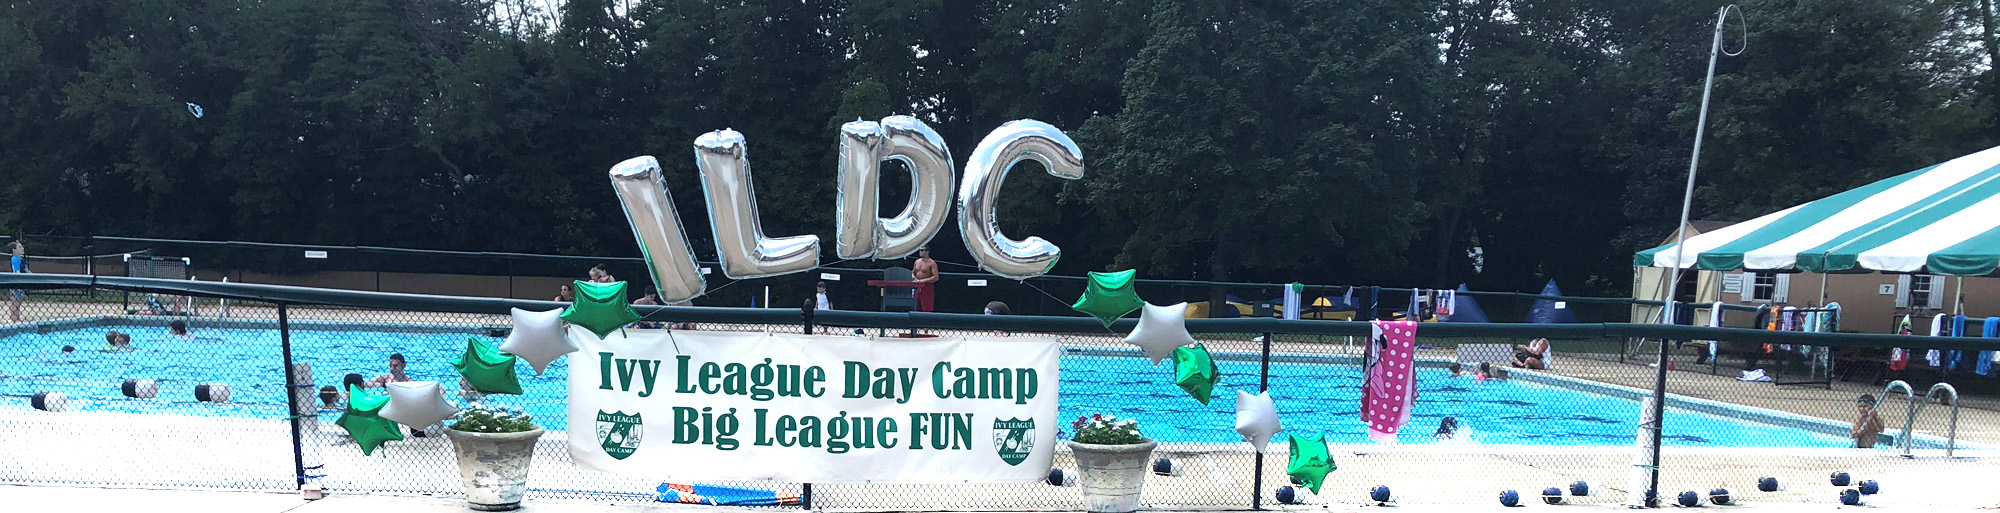 """Lucky to Have Fun at Ivy League Day Camp"" OPEN HOUSE!"